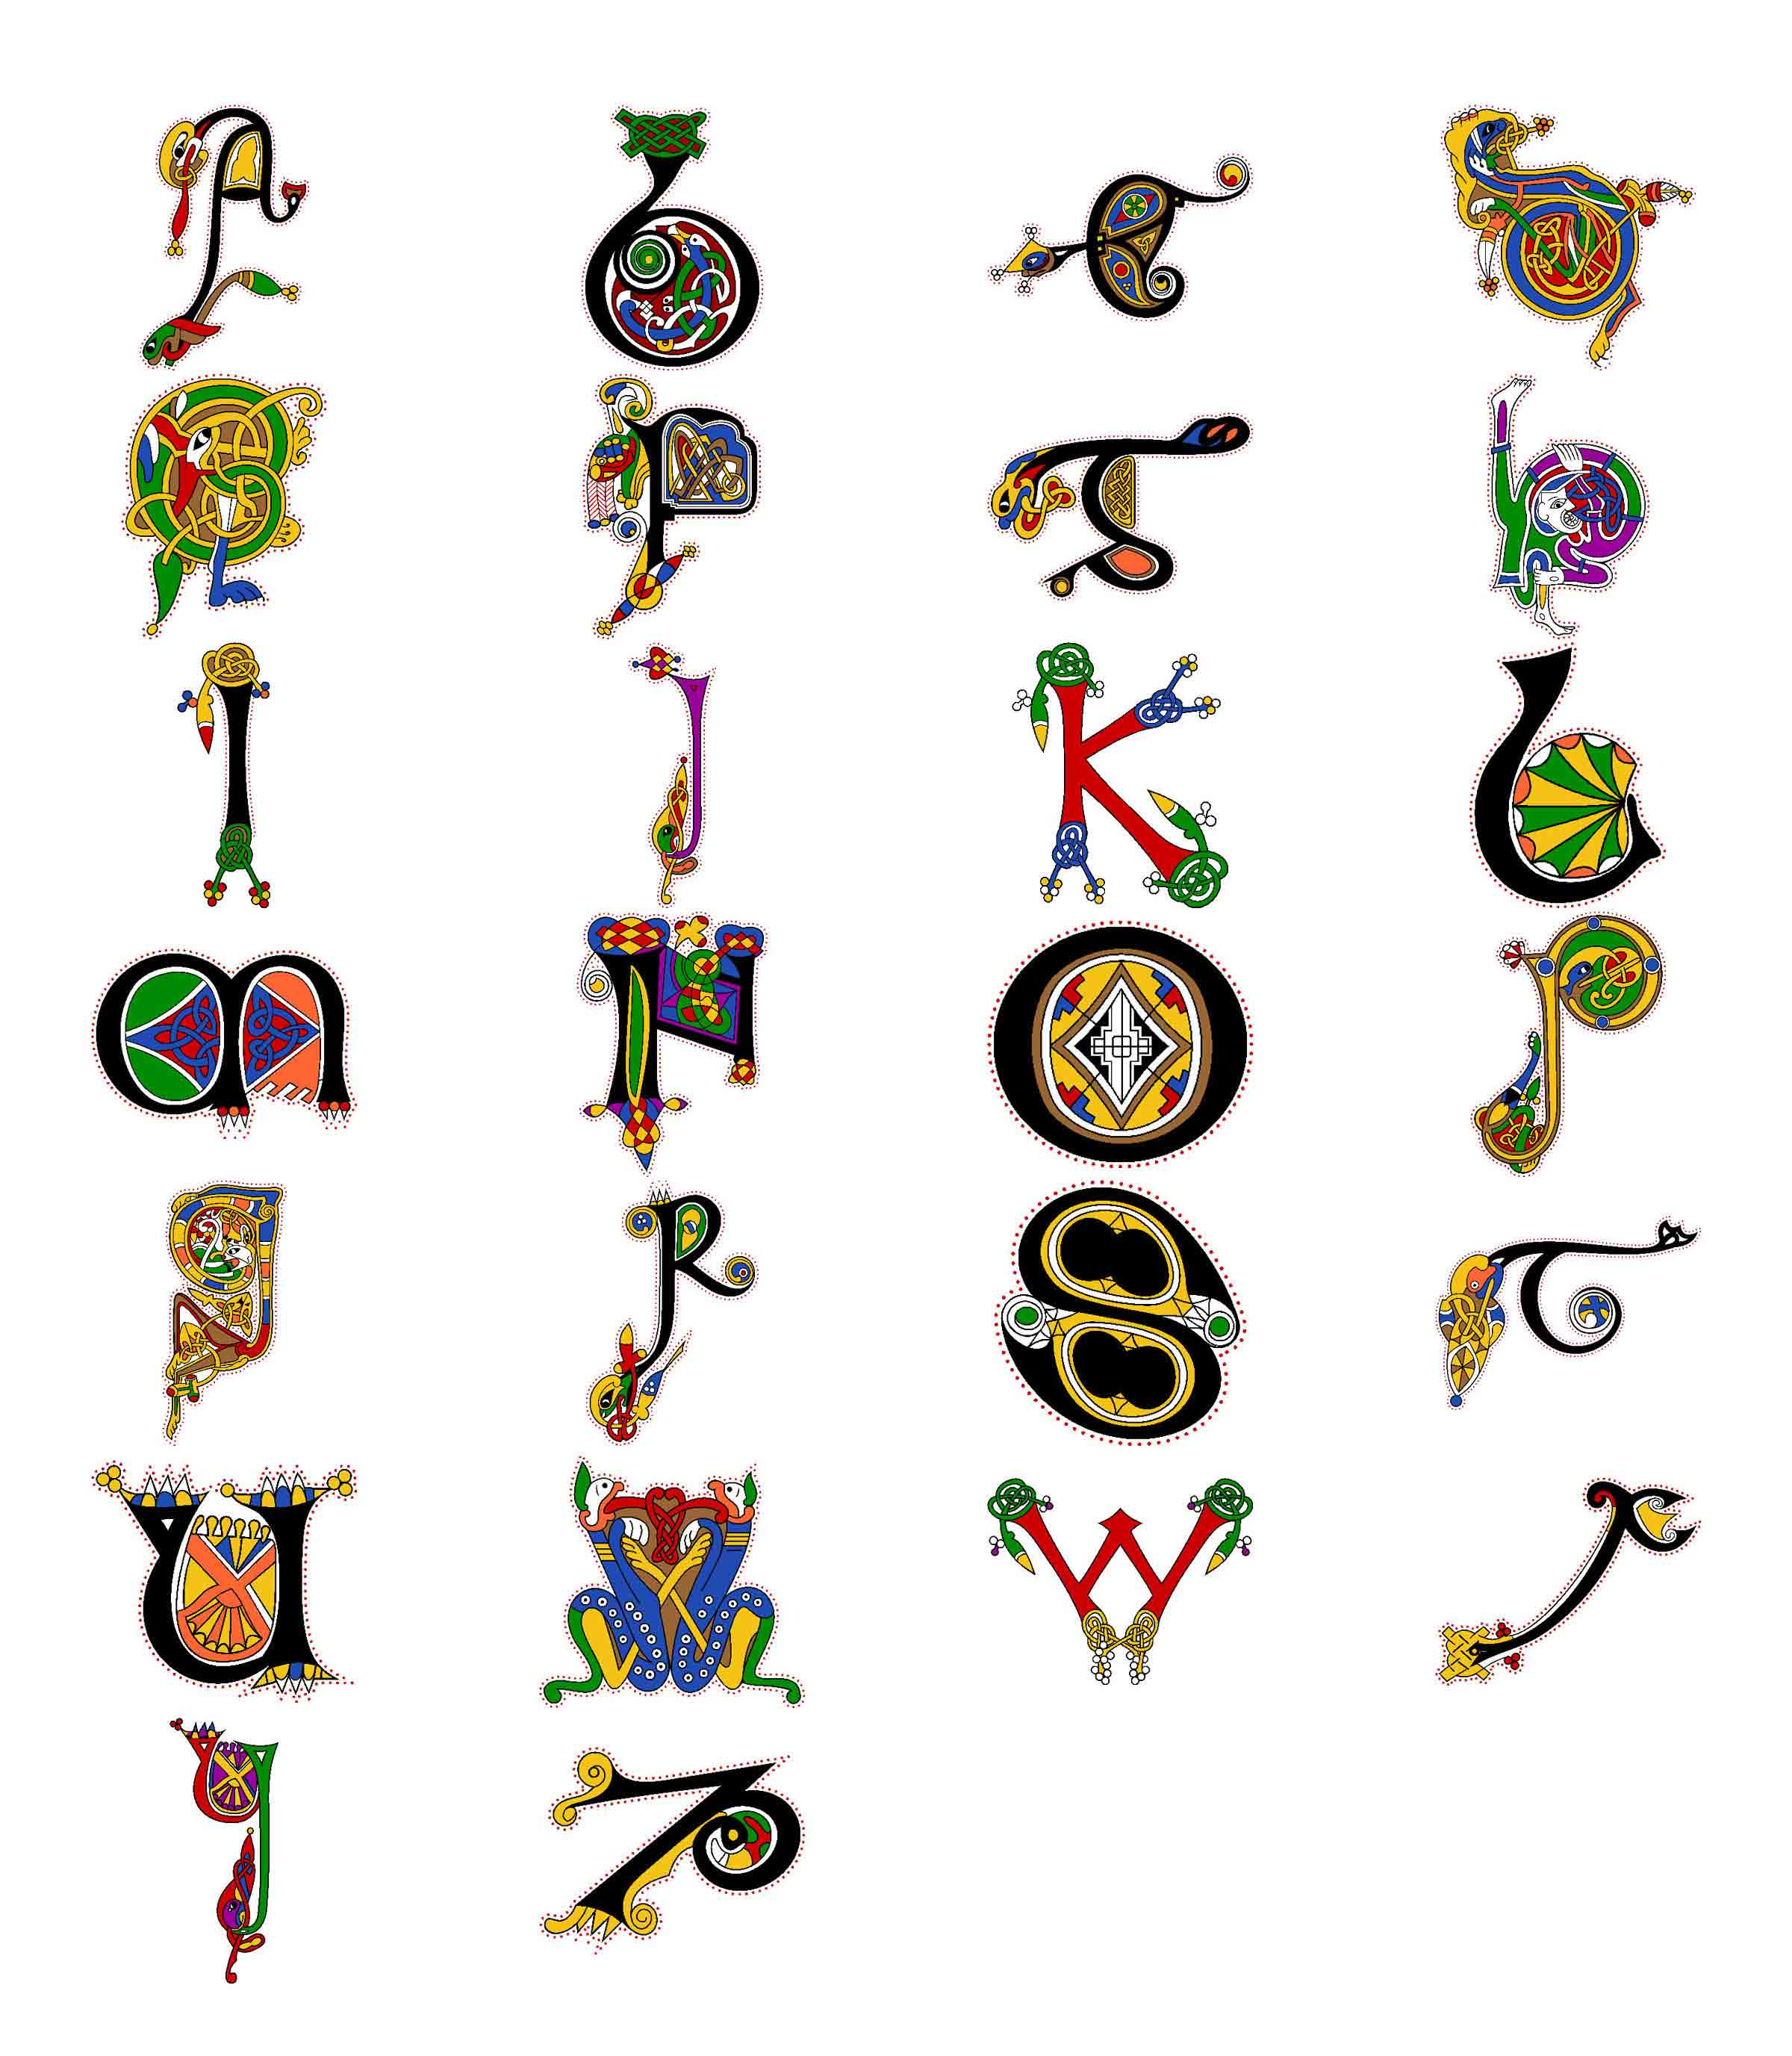 ... letters are the Book of Kells. Call (845) 821-6183 for pricing